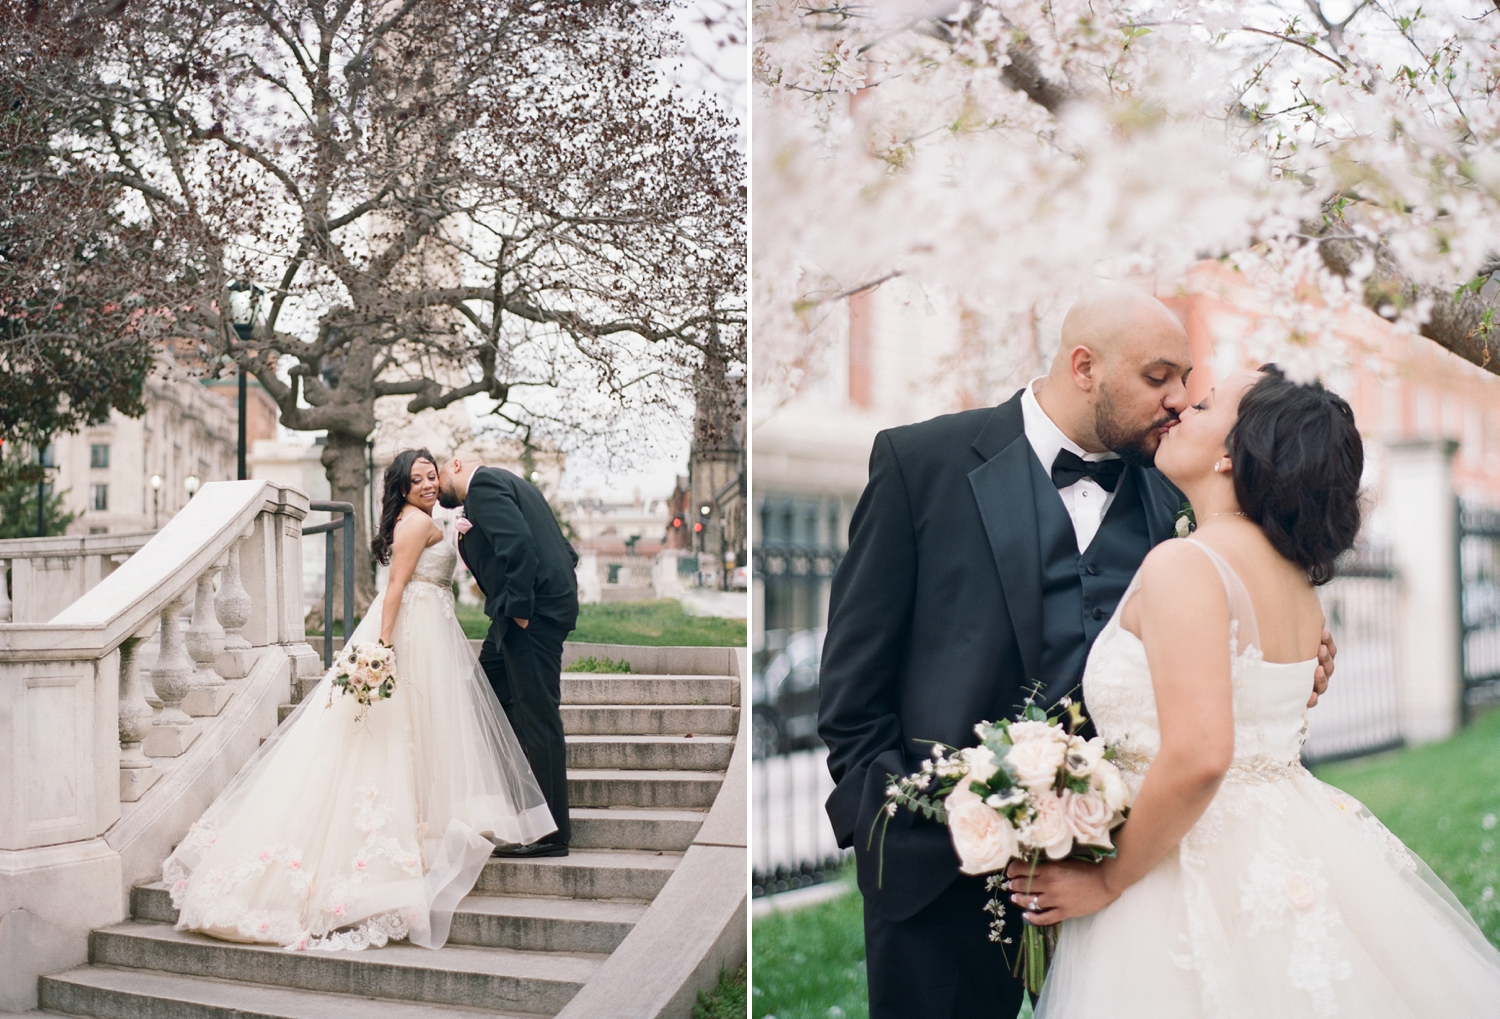 Cherry Blossom Wedding at the George Peabody Library